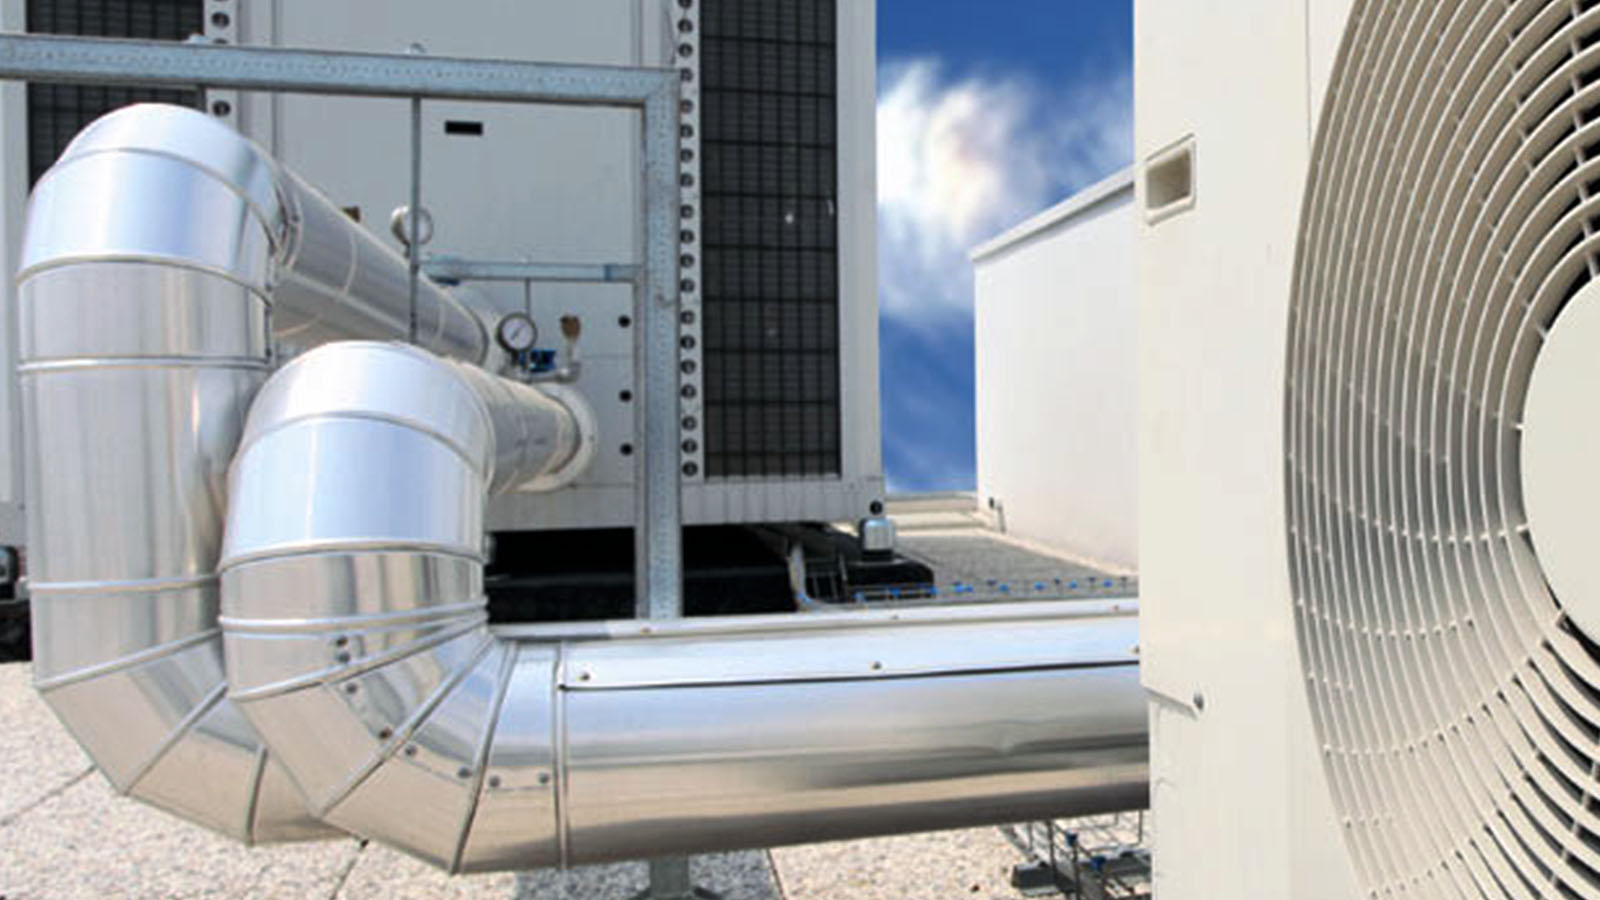 commercial hvac | kelley's heating & cooling | servicing northeast ohio.